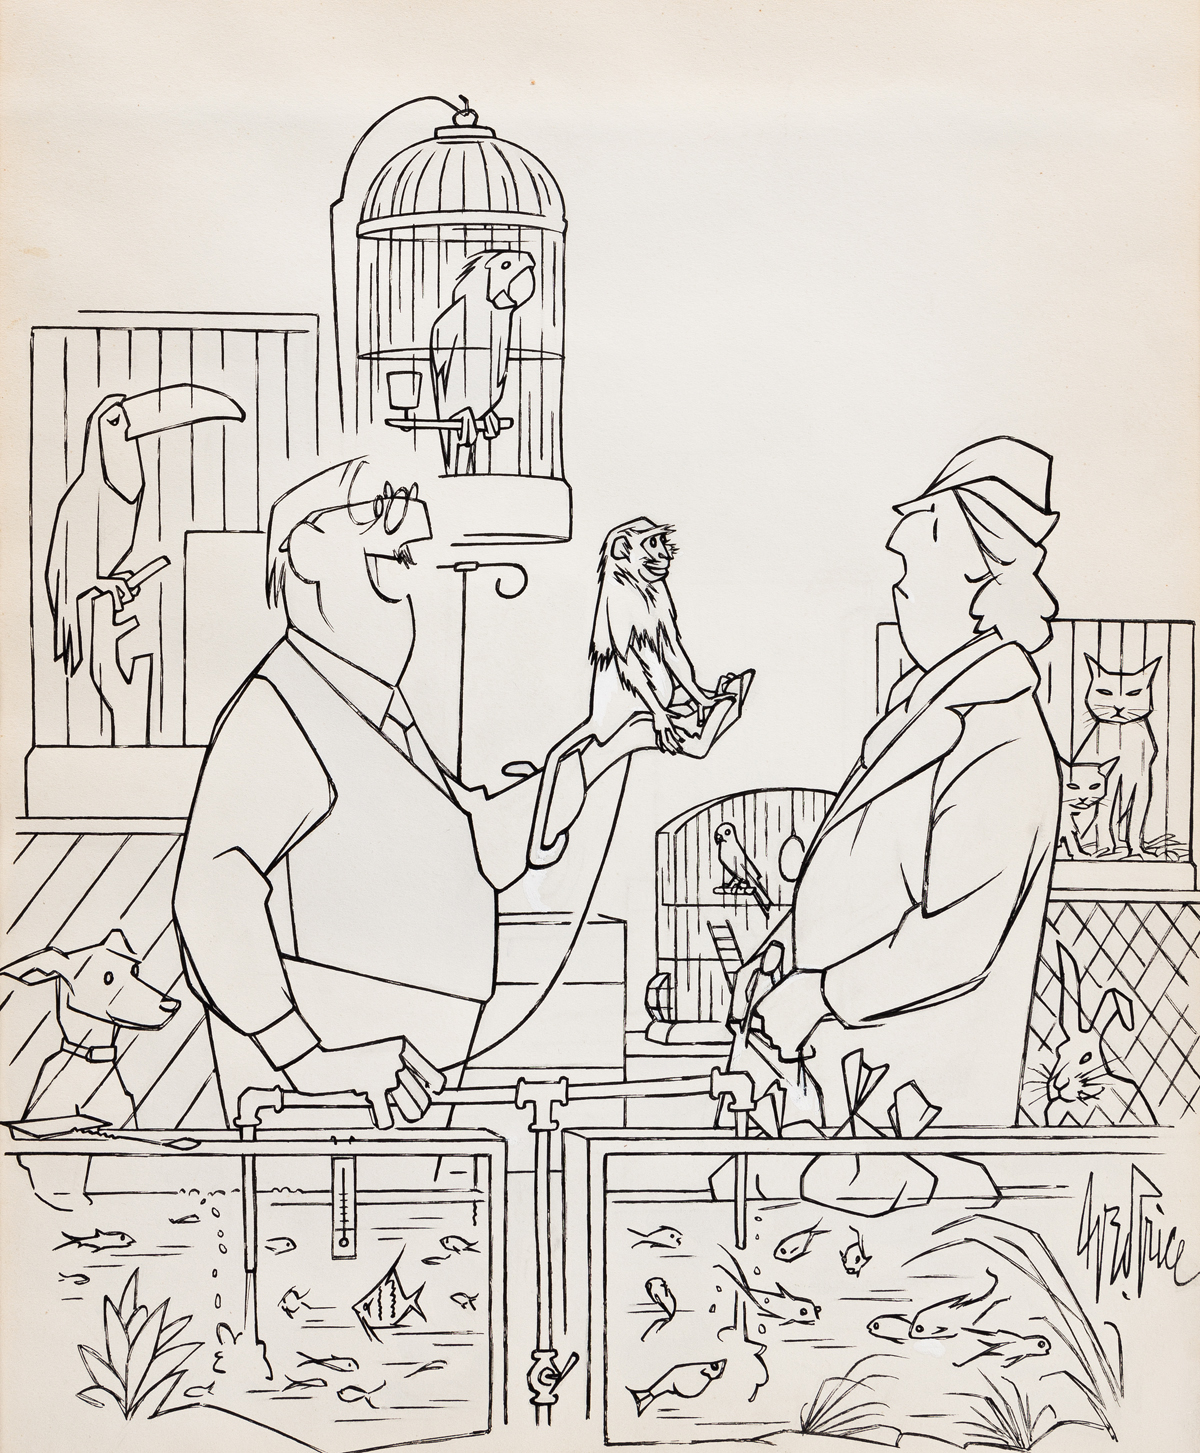 GEORGE PRICE (1901-1995) What better way to say Merry Xmas? [CARTOONS / NEW YORKER / CHRISTMAS]